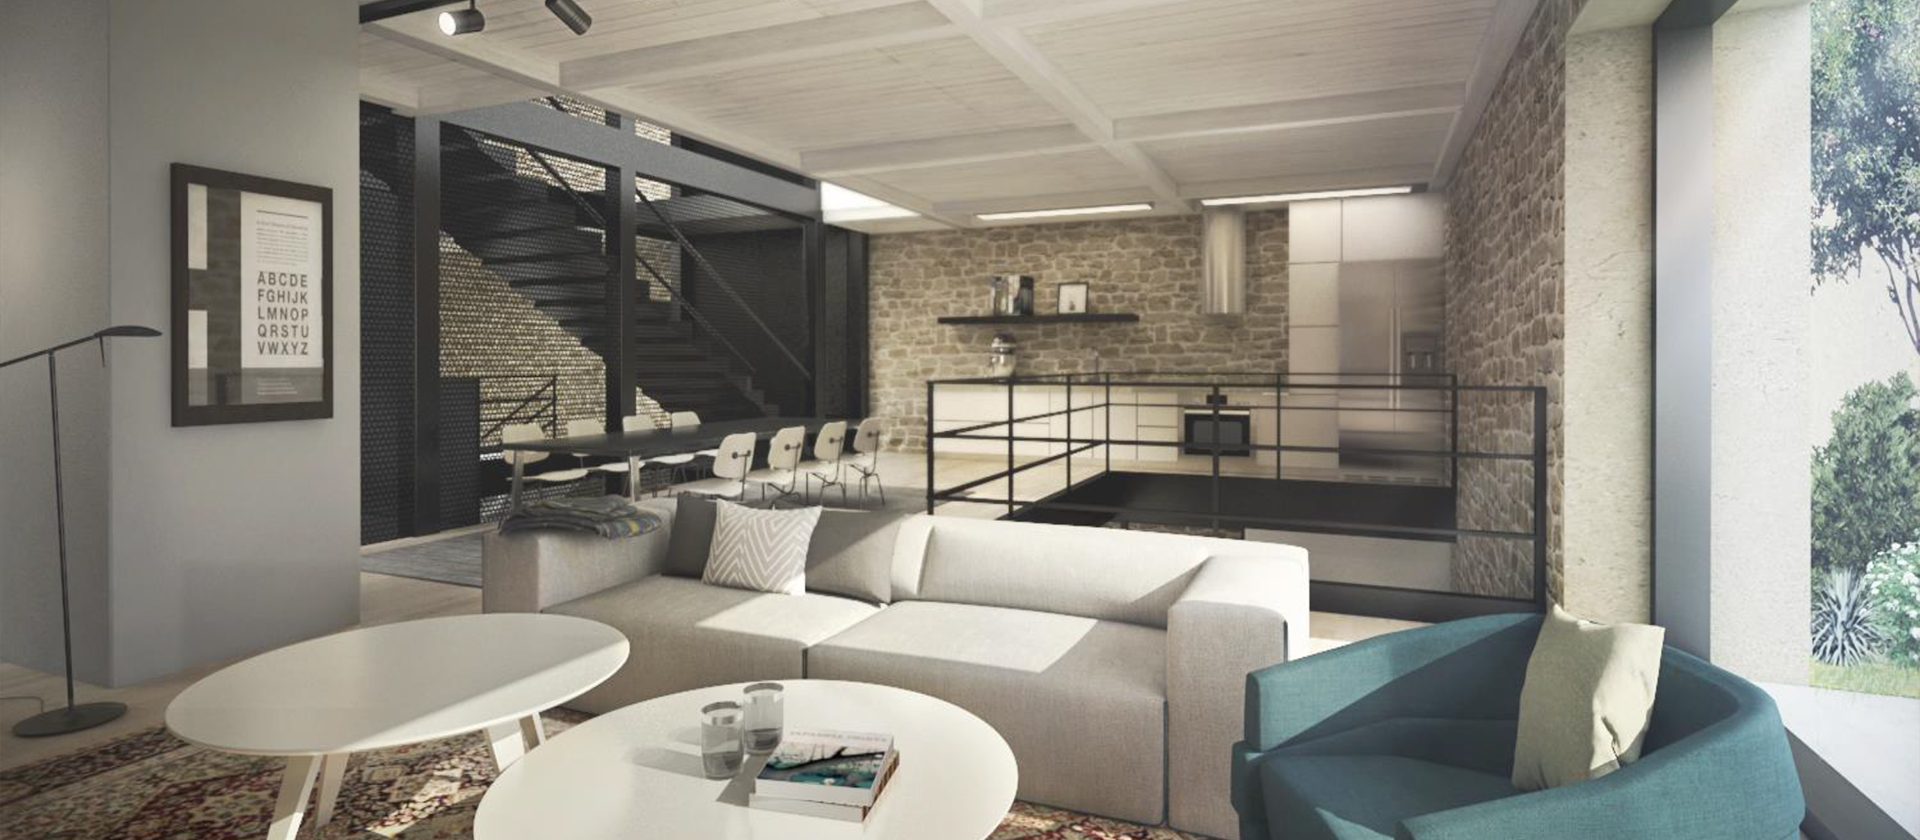 FIDI, Italy   Interior Design School In Florence   Design School   Masters,  Bachelors And Courses In English Amazing Design